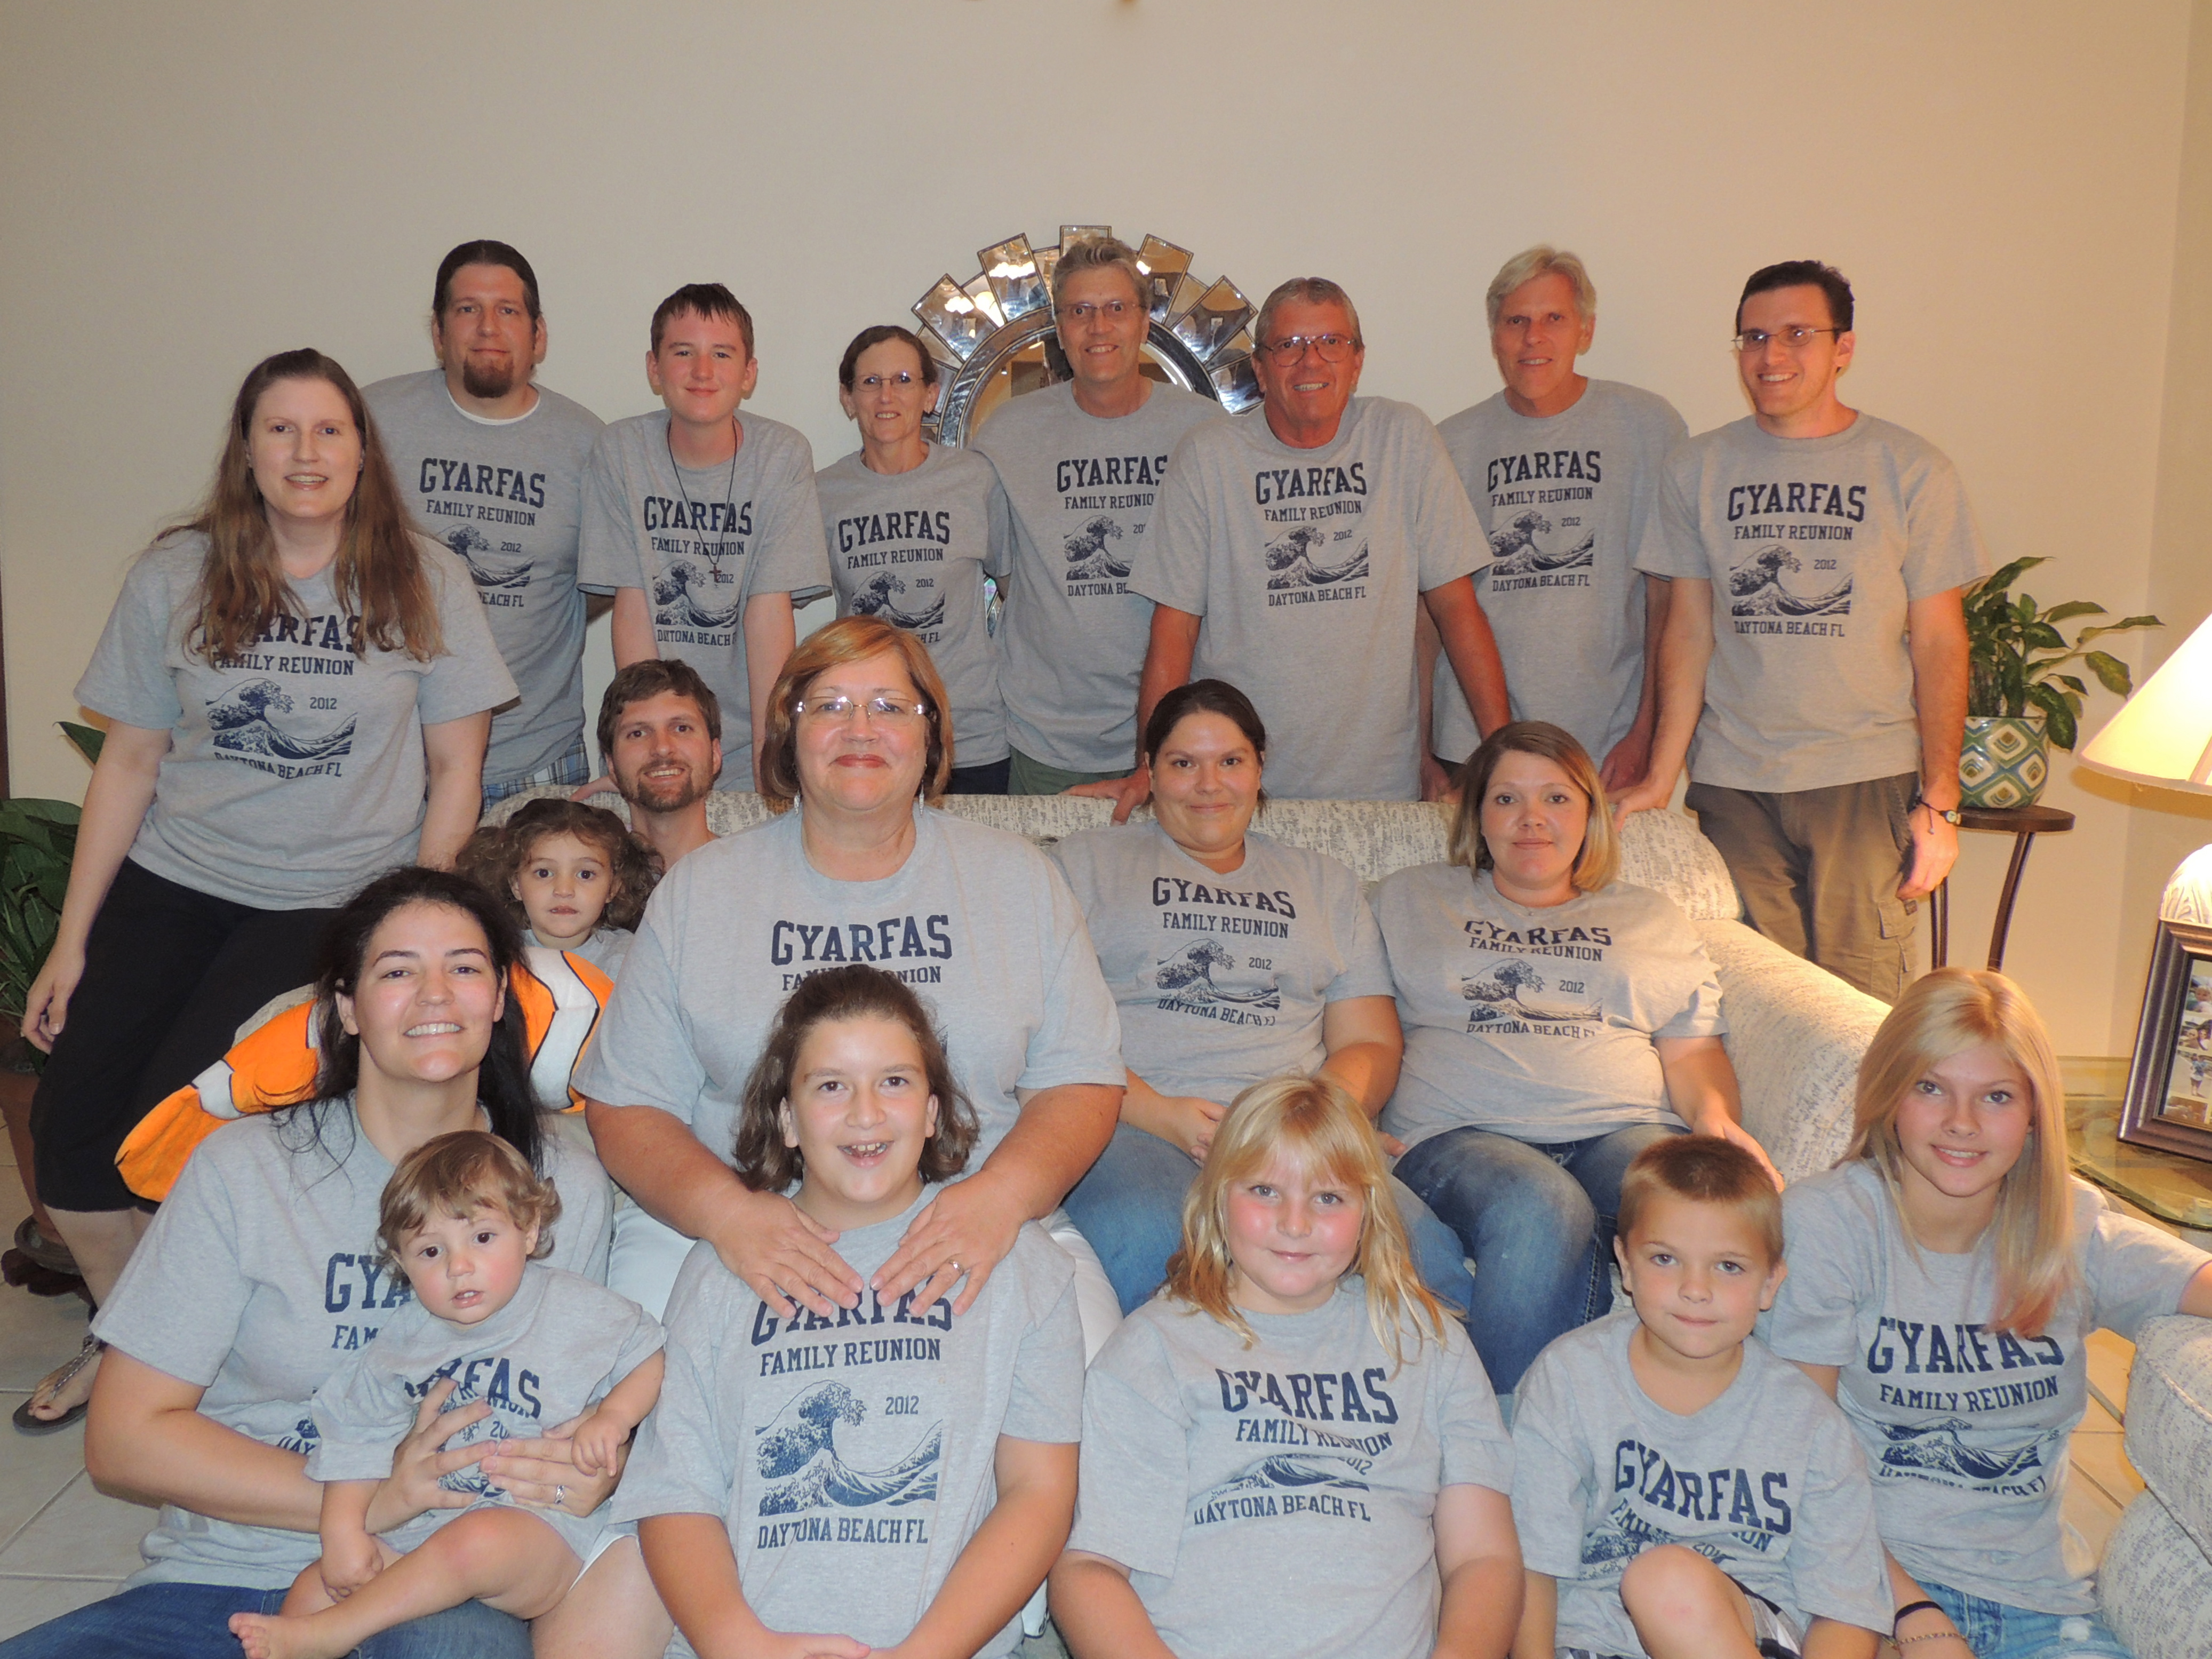 Design tshirt family - Gyarfas Family Reunion T Shirt Photo